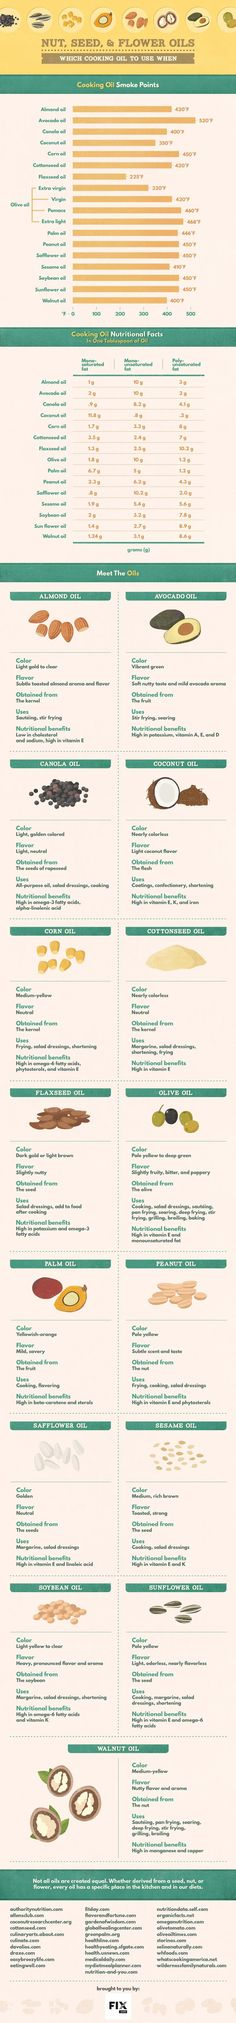 15 Cooking Oils and How to Use Them >> https://www.finedininglovers.com/blog/food-drinks/what-oil-to-use/